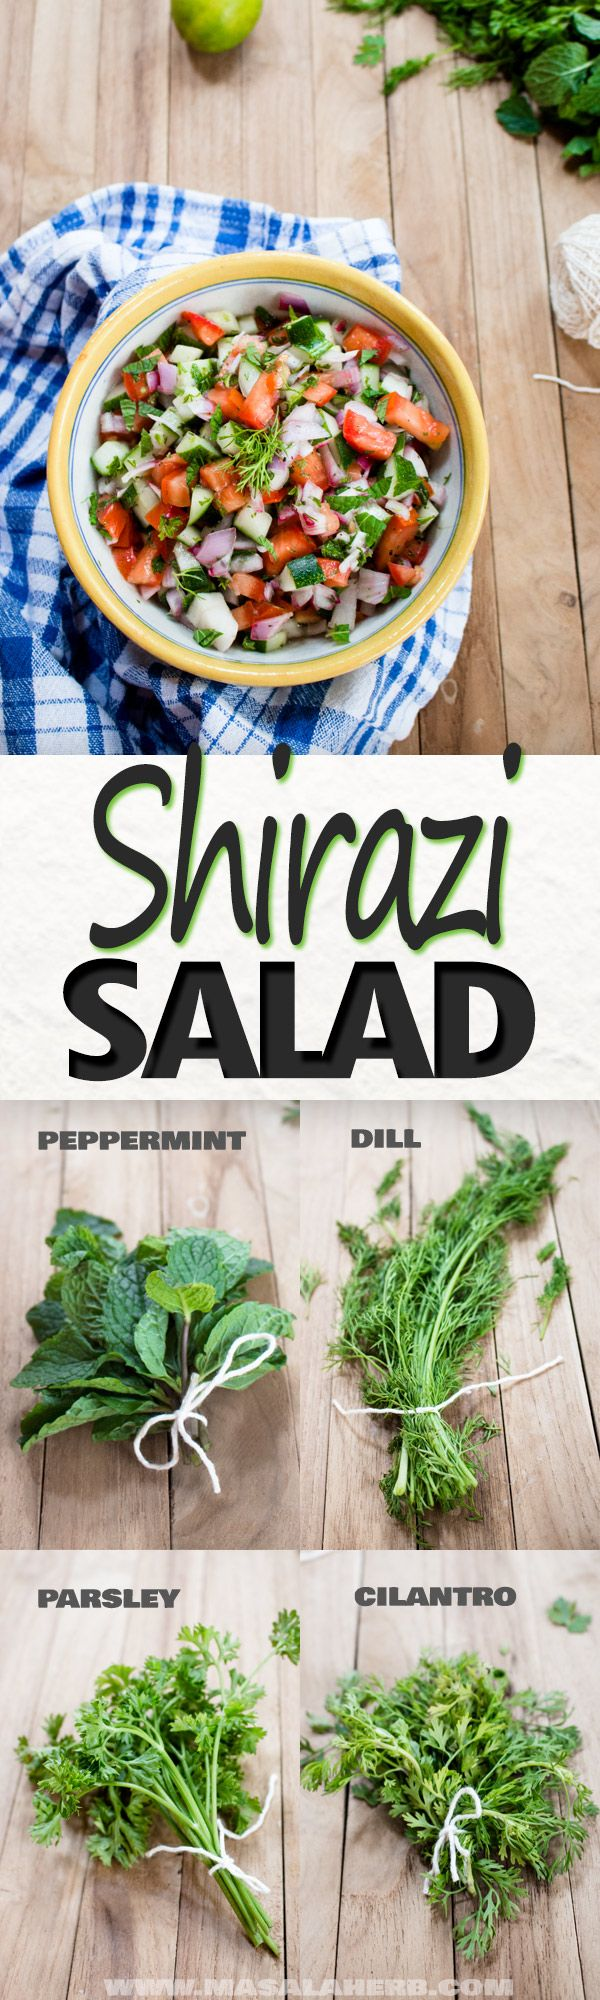 Easy Shirazi Salad - Refreshing Persian Salad Recipe - cucumber, tomato, onion and fresh herbs makes this salad with a light tart dressing a refreshing side dish during the hot summer days. Serve with meat kebabs, bbq, steak, pilaf, flat bread. www.MasalaHerb.com #salad #persian #herbs